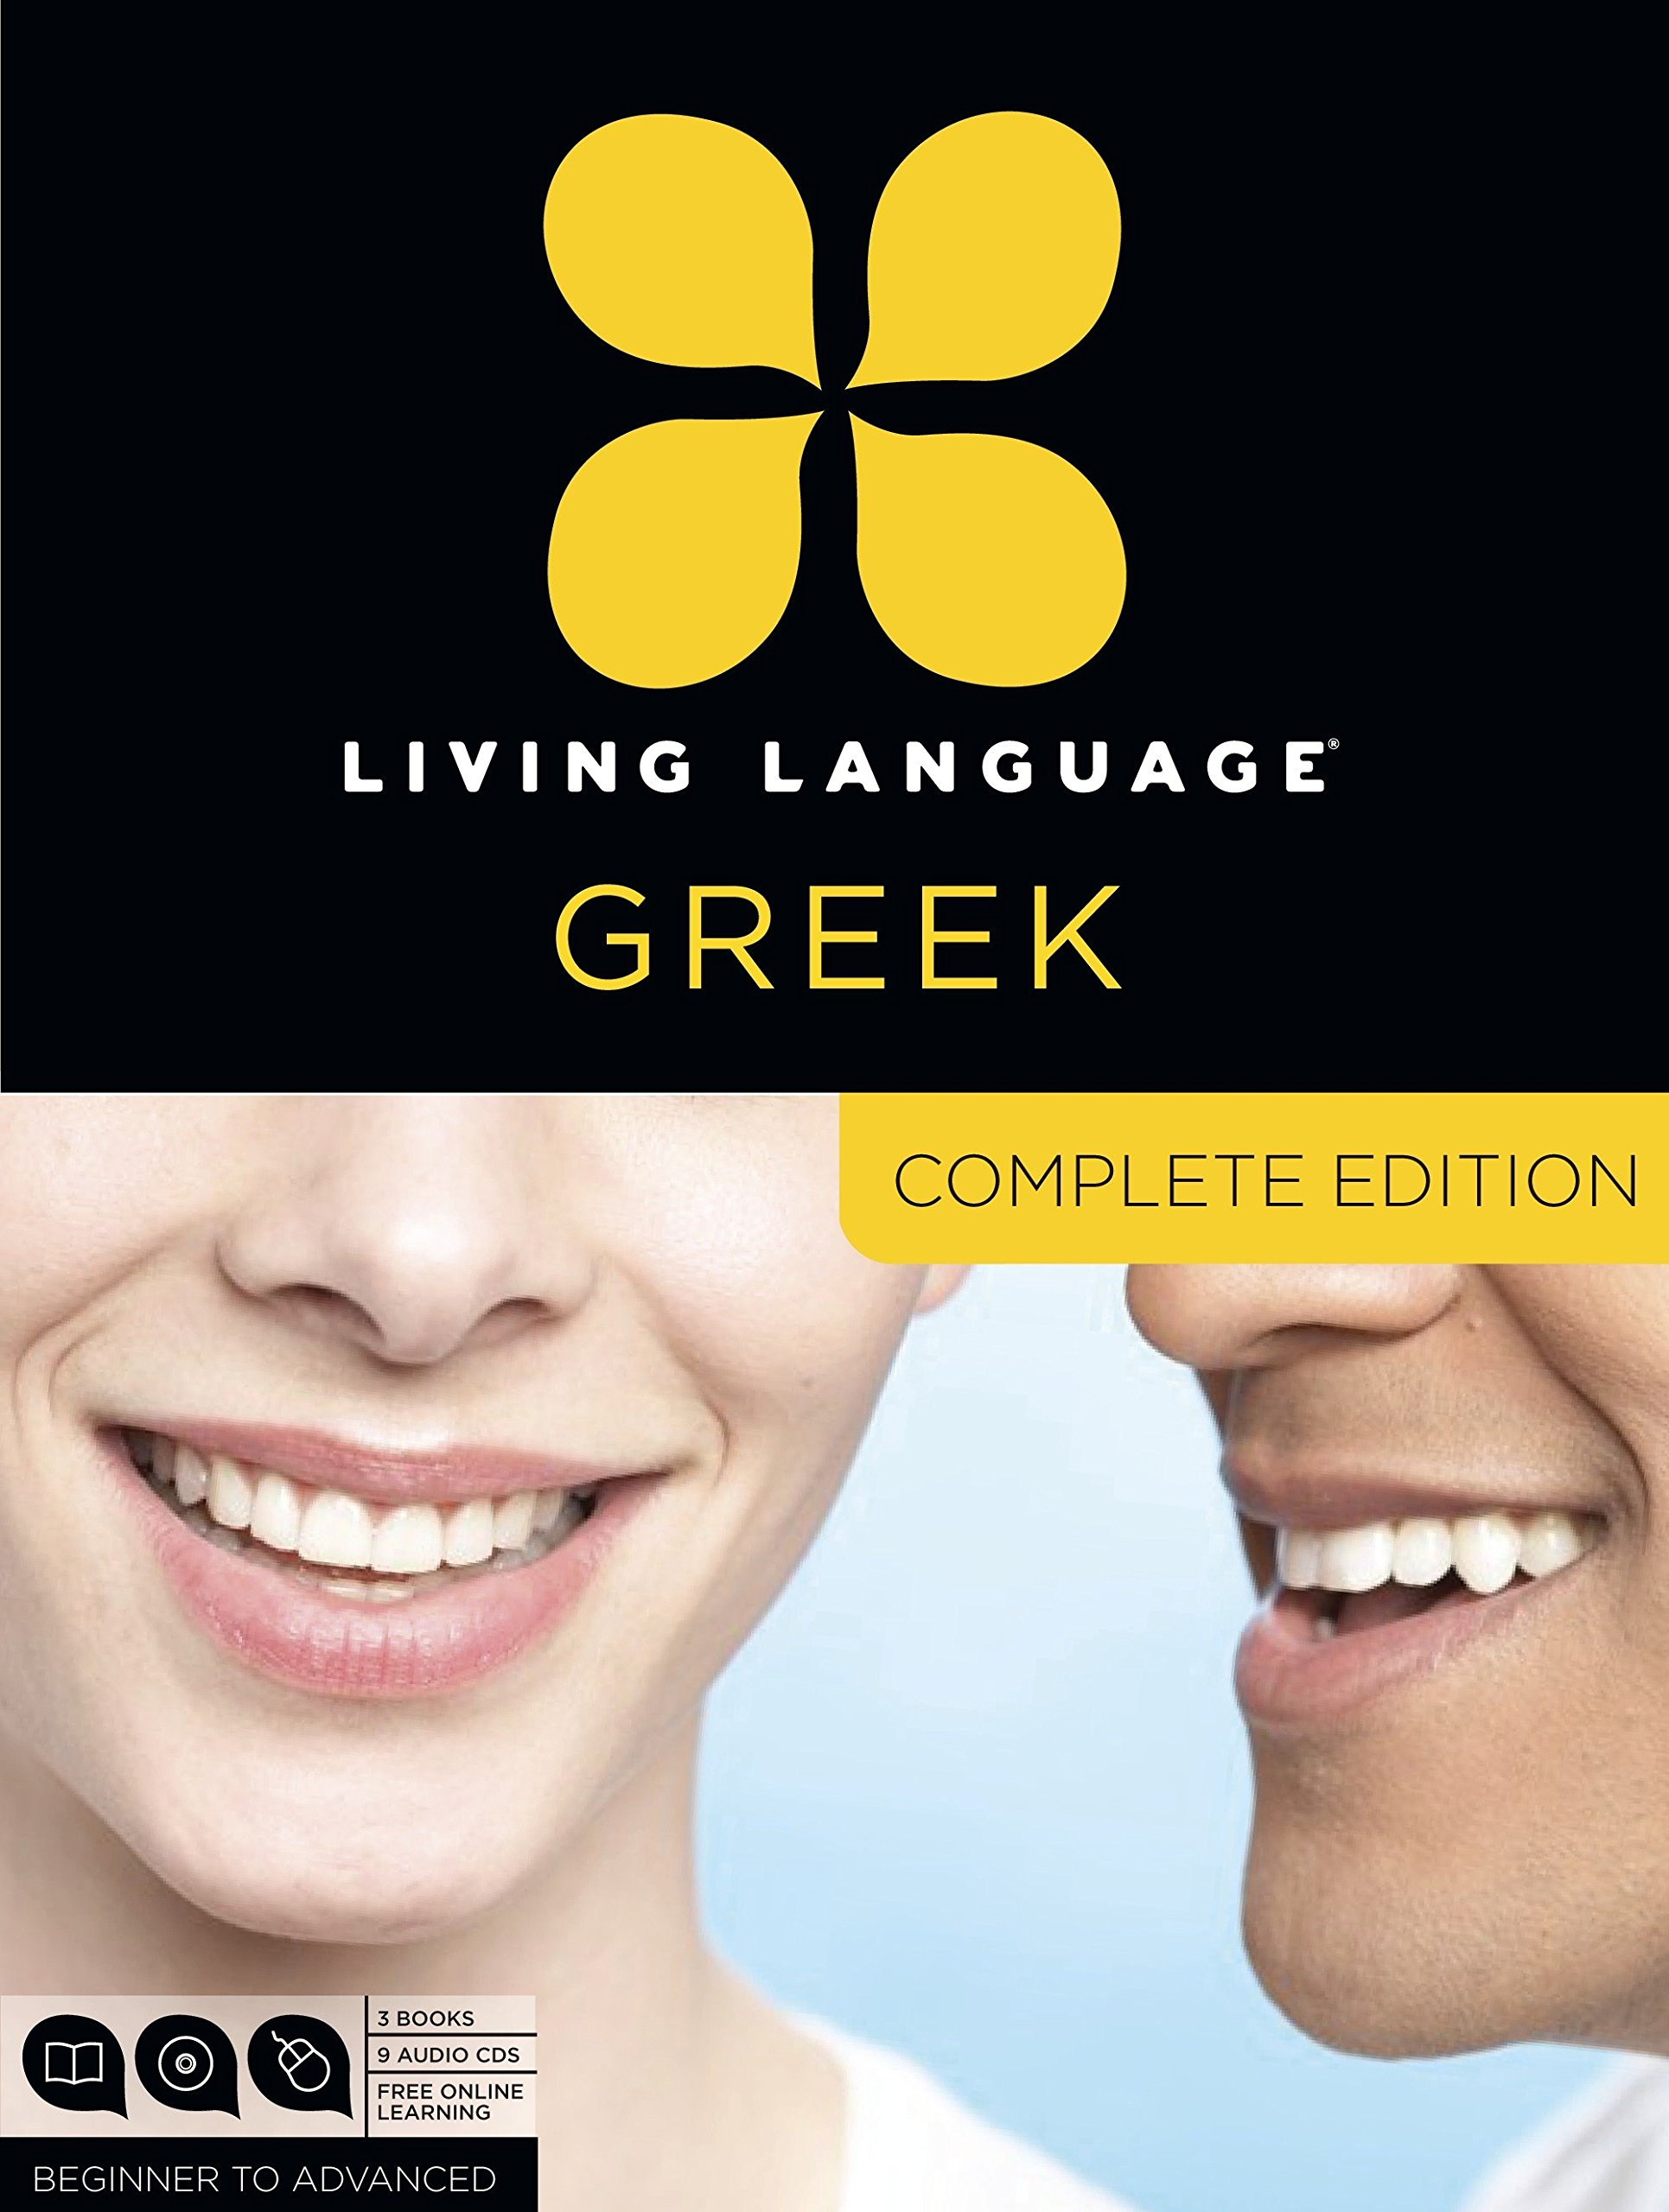 Living Language Greek, Complete Edition: Beginner through advanced course, including 3 coursebooks, 9 audio CDs, and free online learning by Living Language